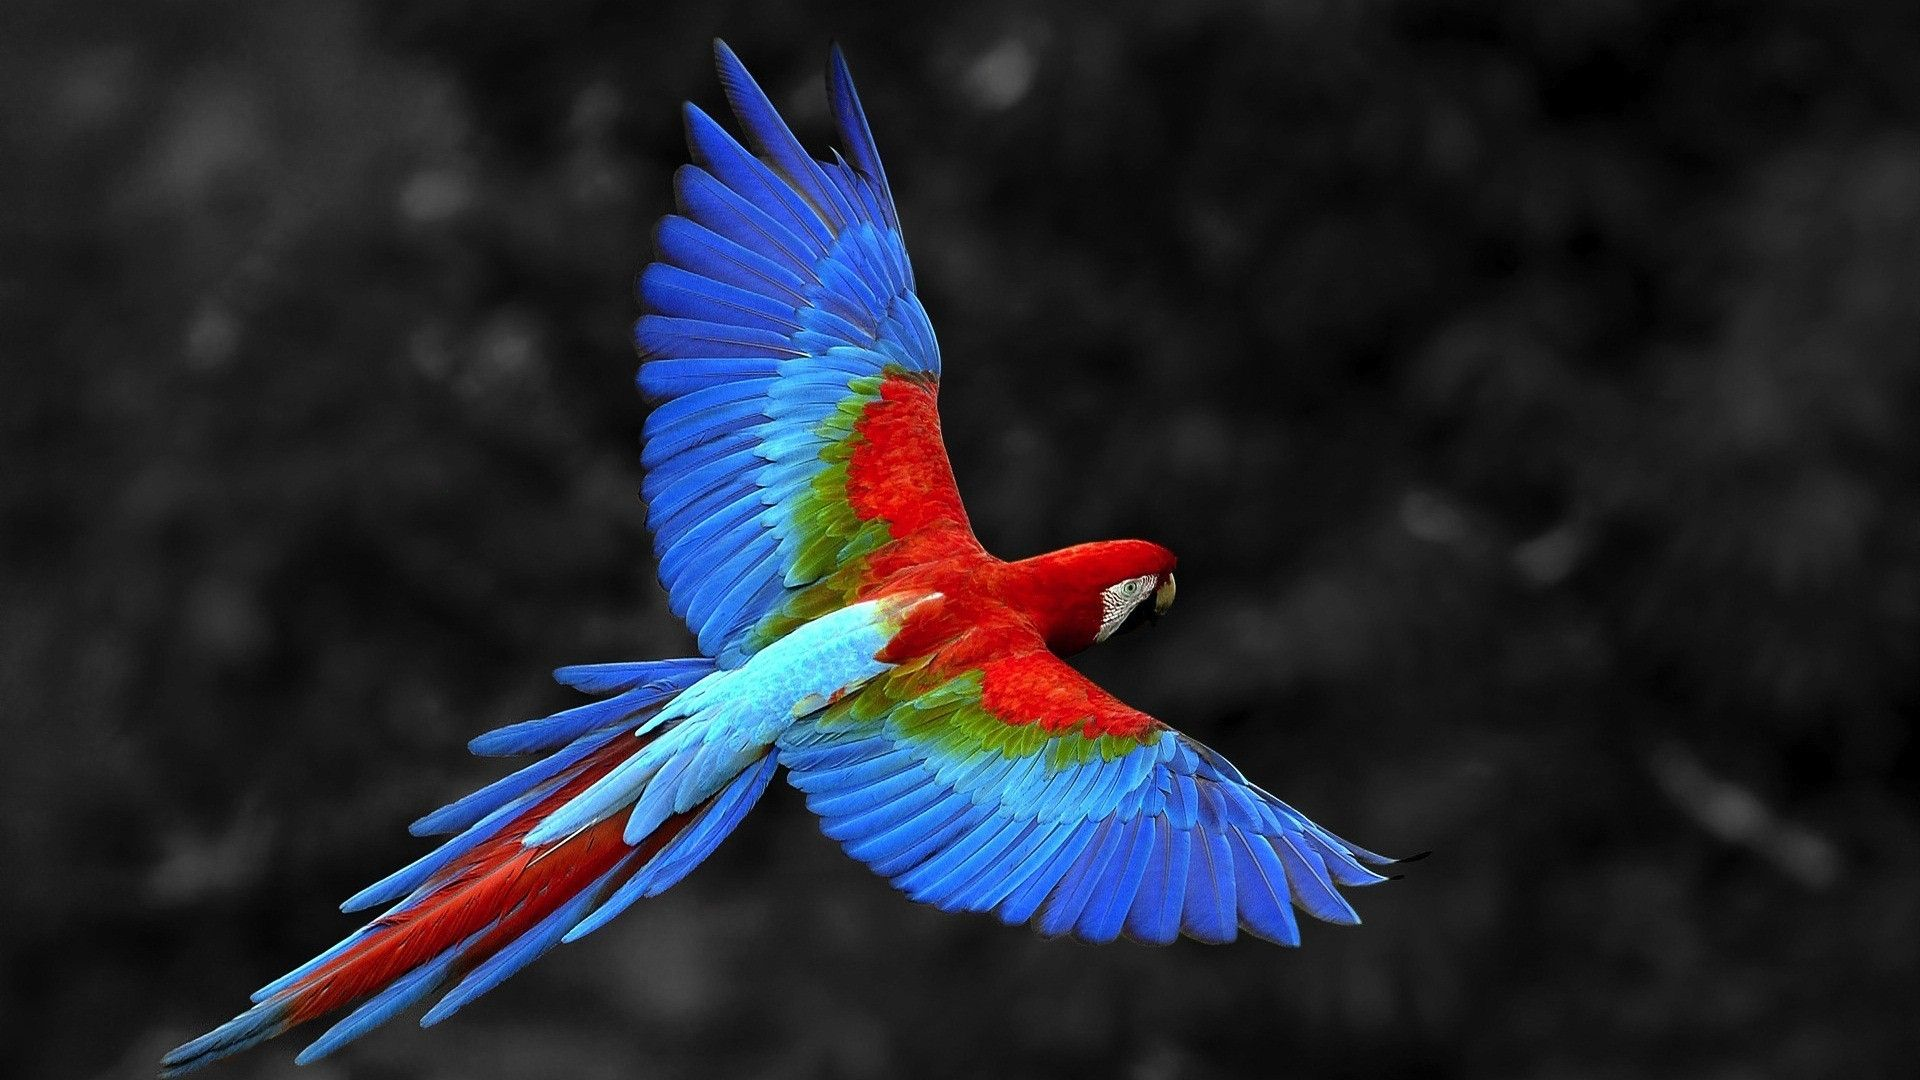 Colorful Parrot Flying Bird Wallpaper Animal Wallpapers Hd